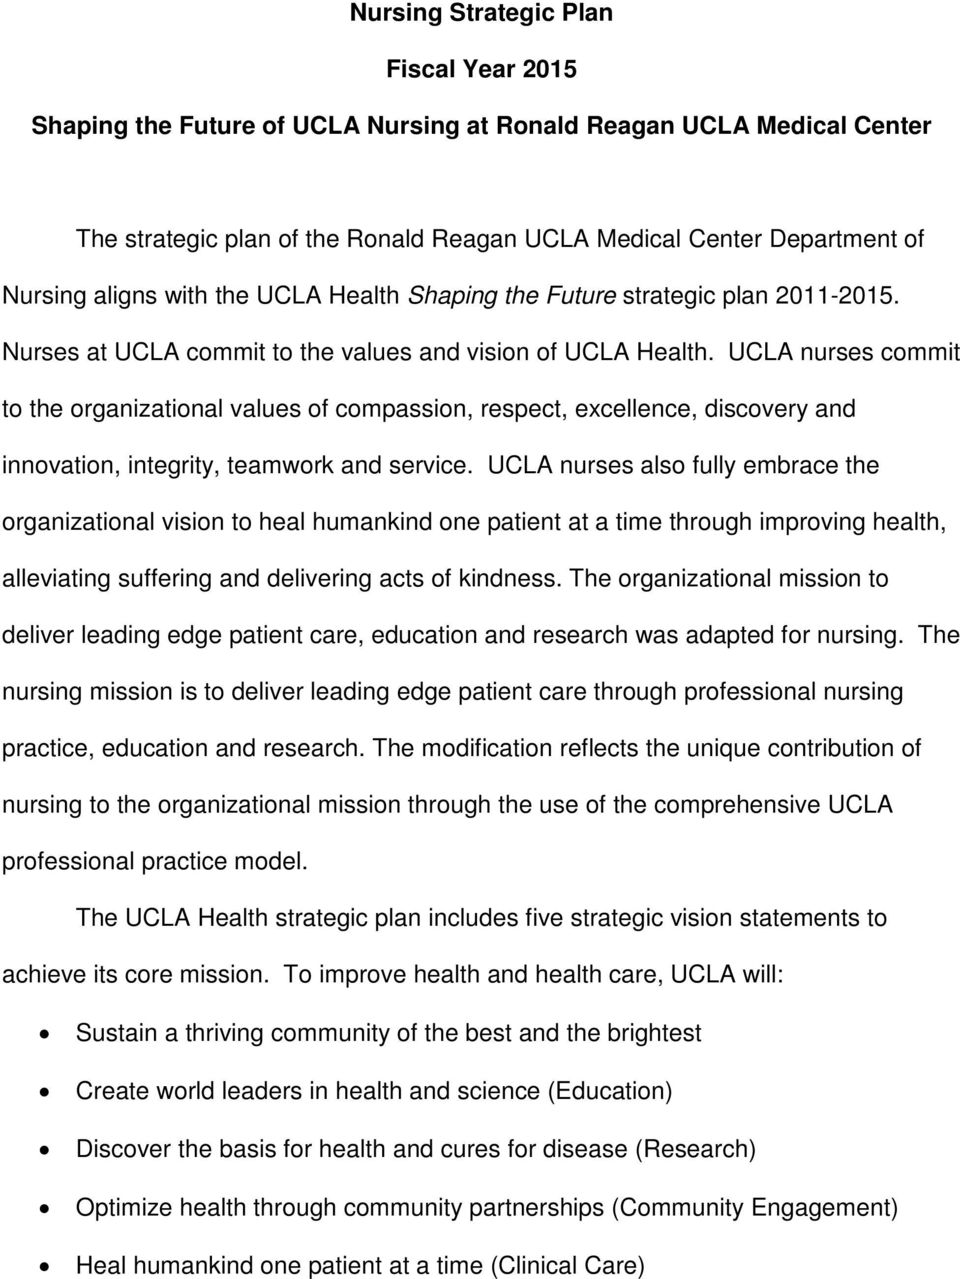 UCLA nurses commit to the organizational values of compassion, respect, excellence, discovery and innovation, integrity, teamwork and service.